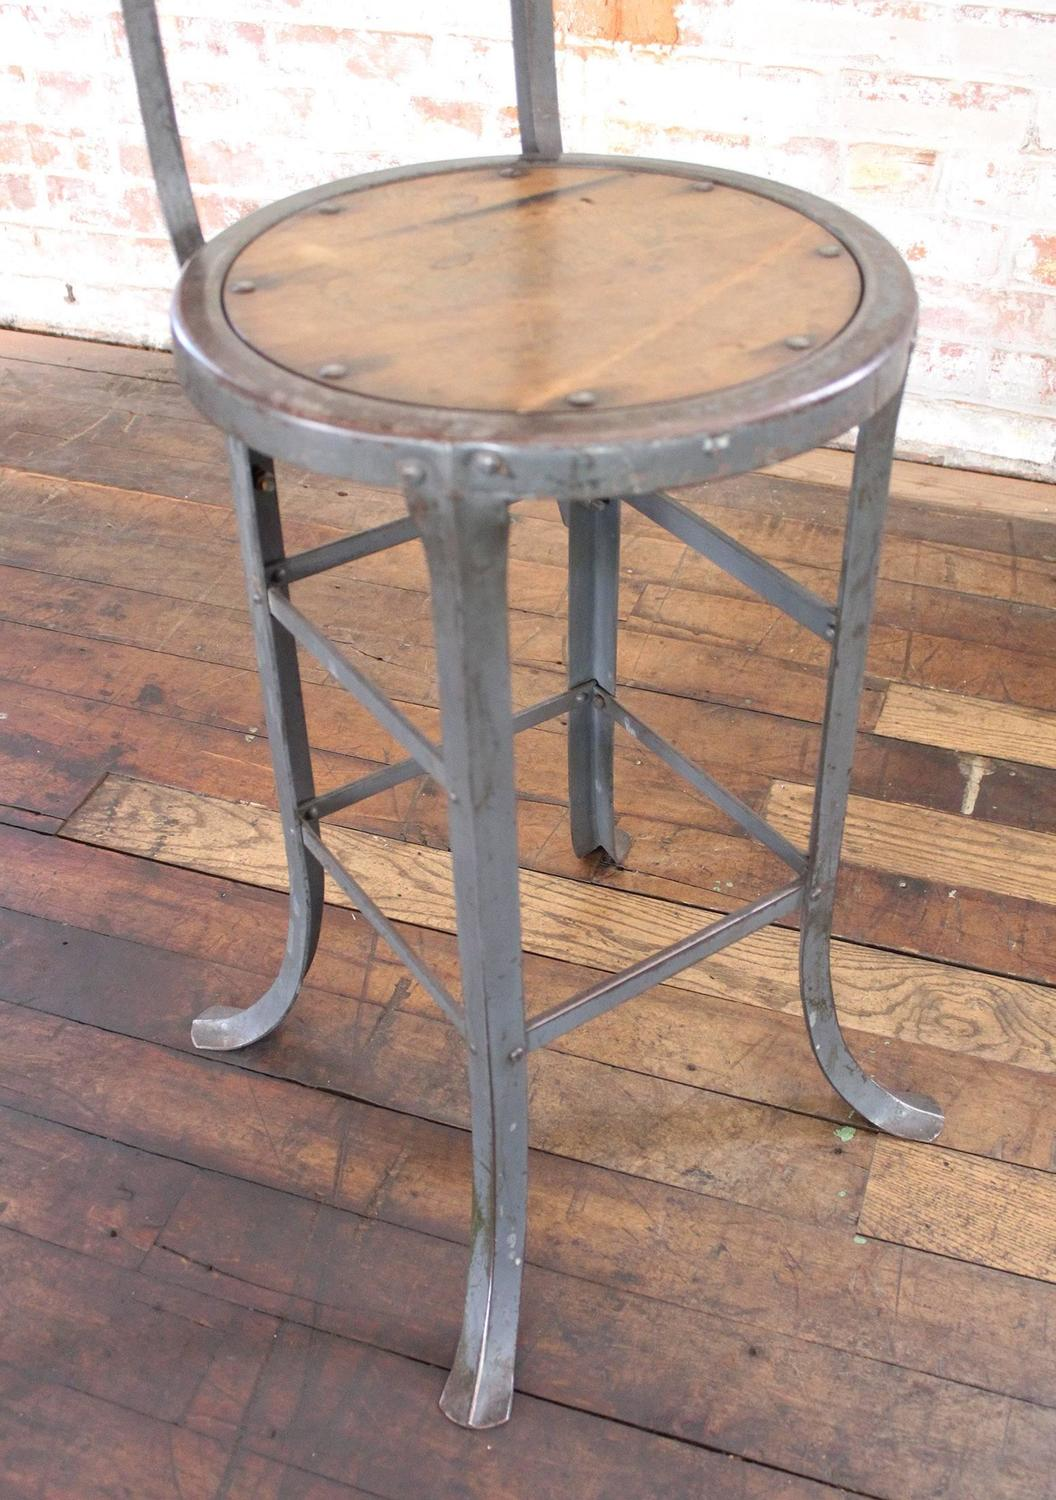 rustic metal kitchen chairs yogibo bean bag chair vintage industrial wood and bar